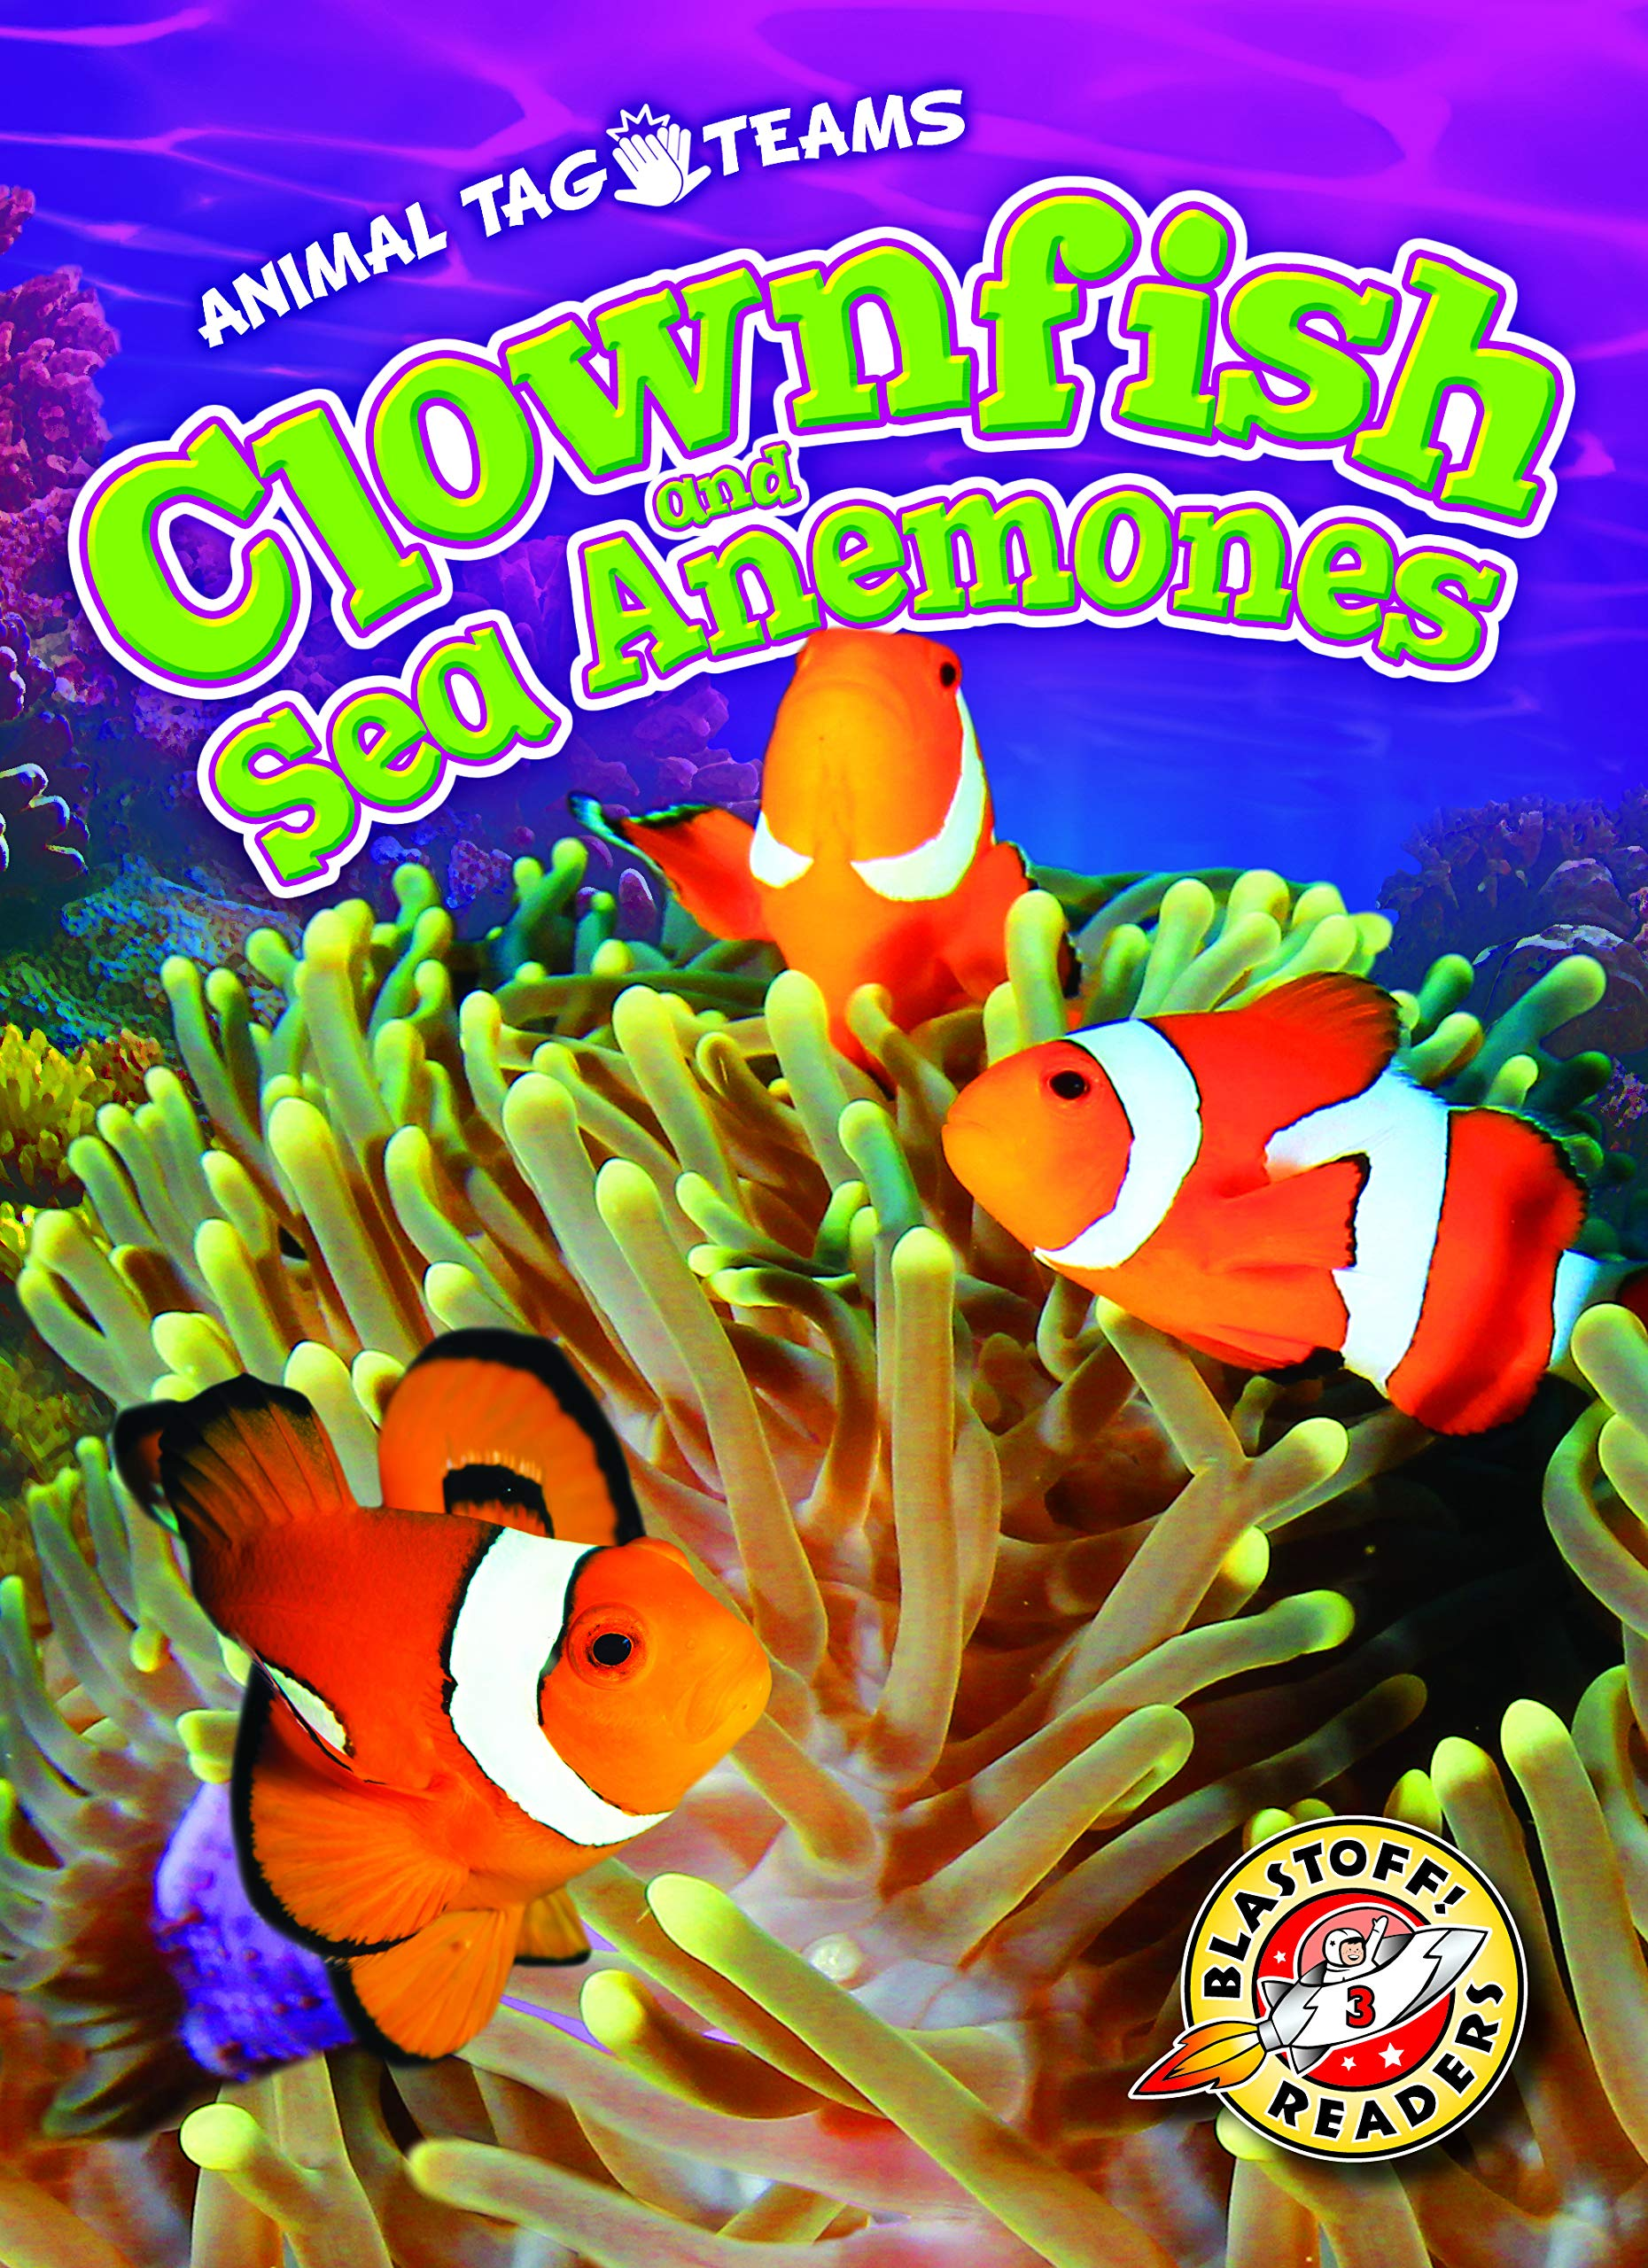 Clownfish and Sea Anemones (Blastoff! Readers, Level 3:Animal Tag ...